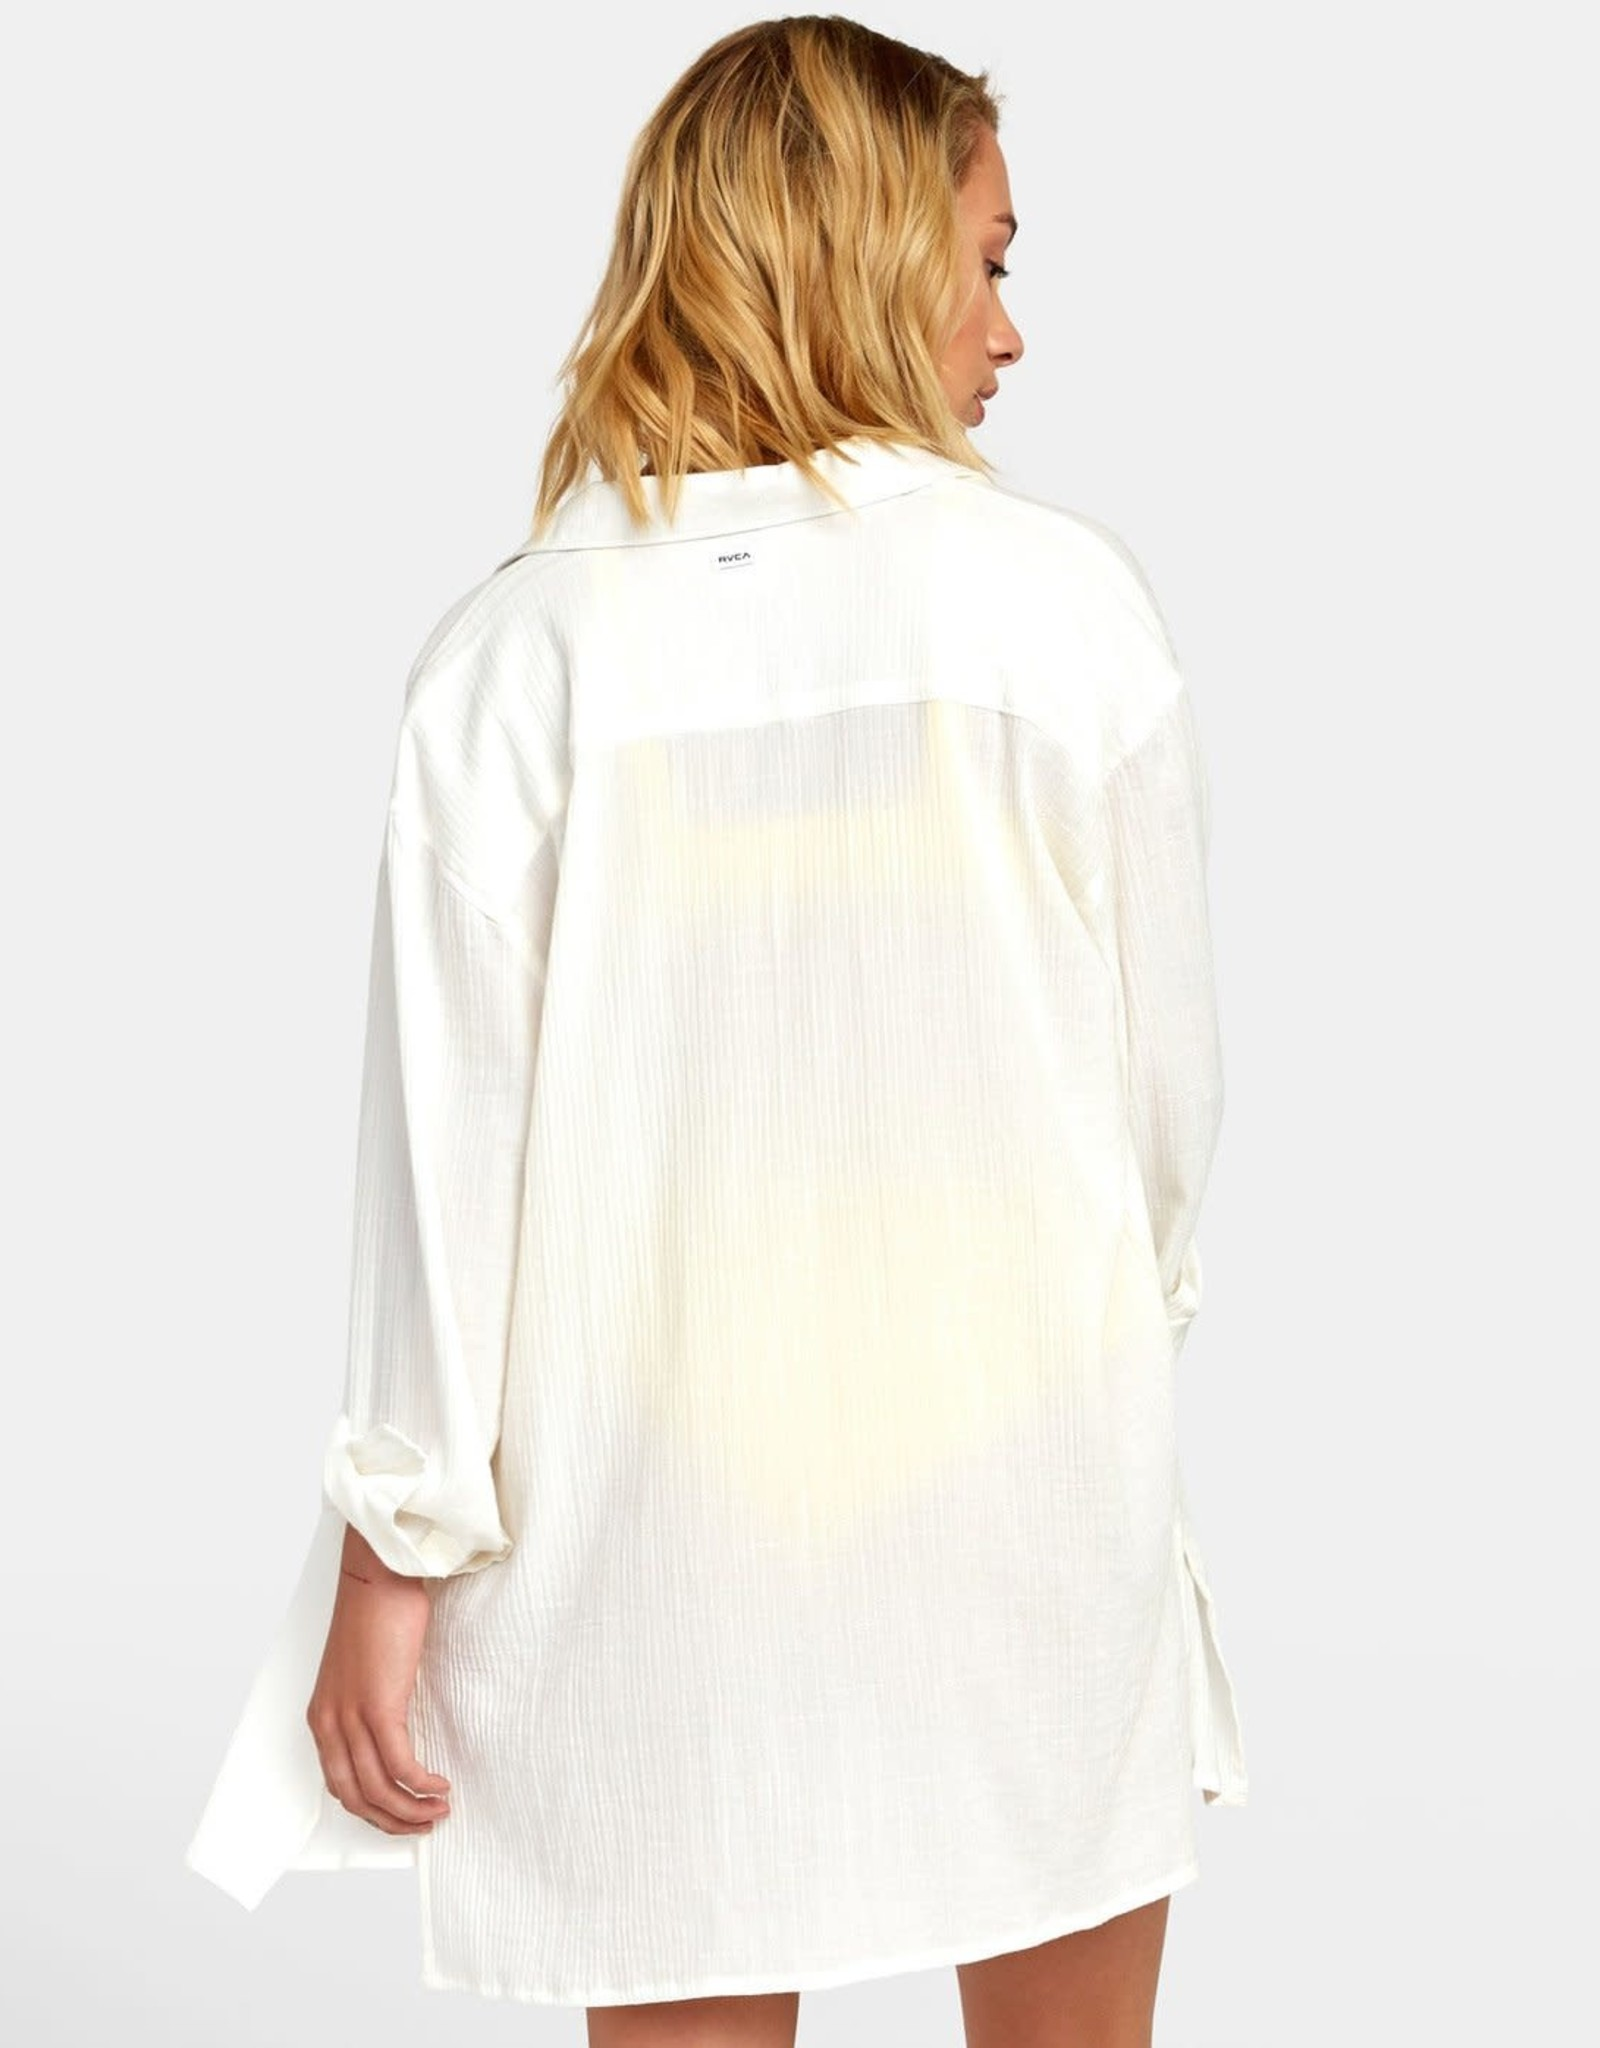 RVCA SUN DANCE Tunic Shirt